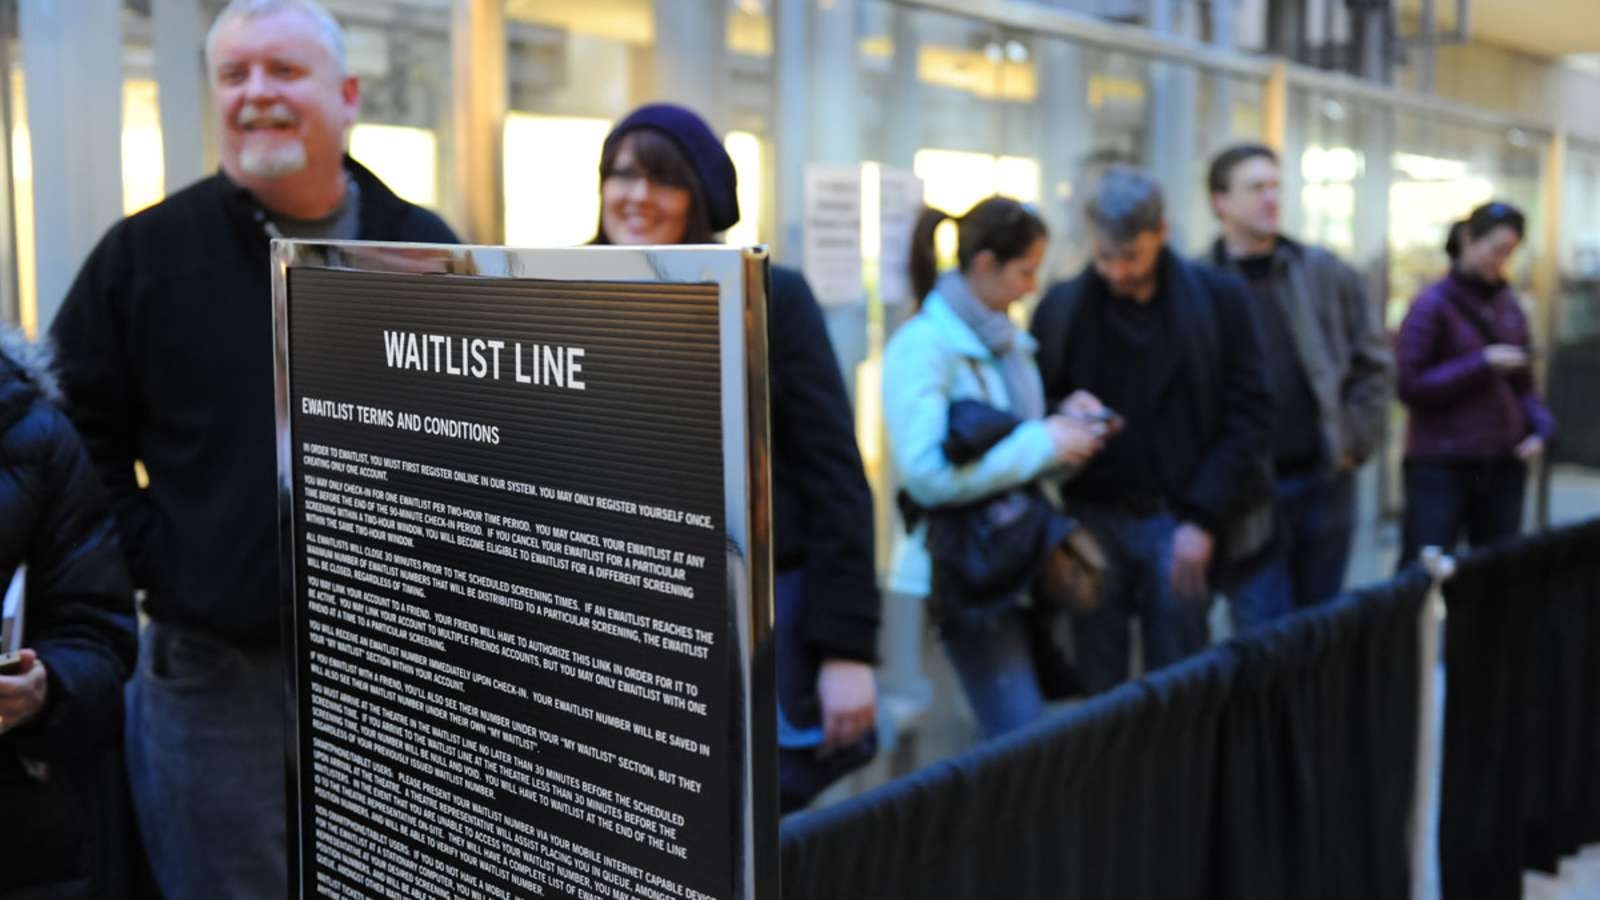 Waitlist Line at Sundance in Salt Lake